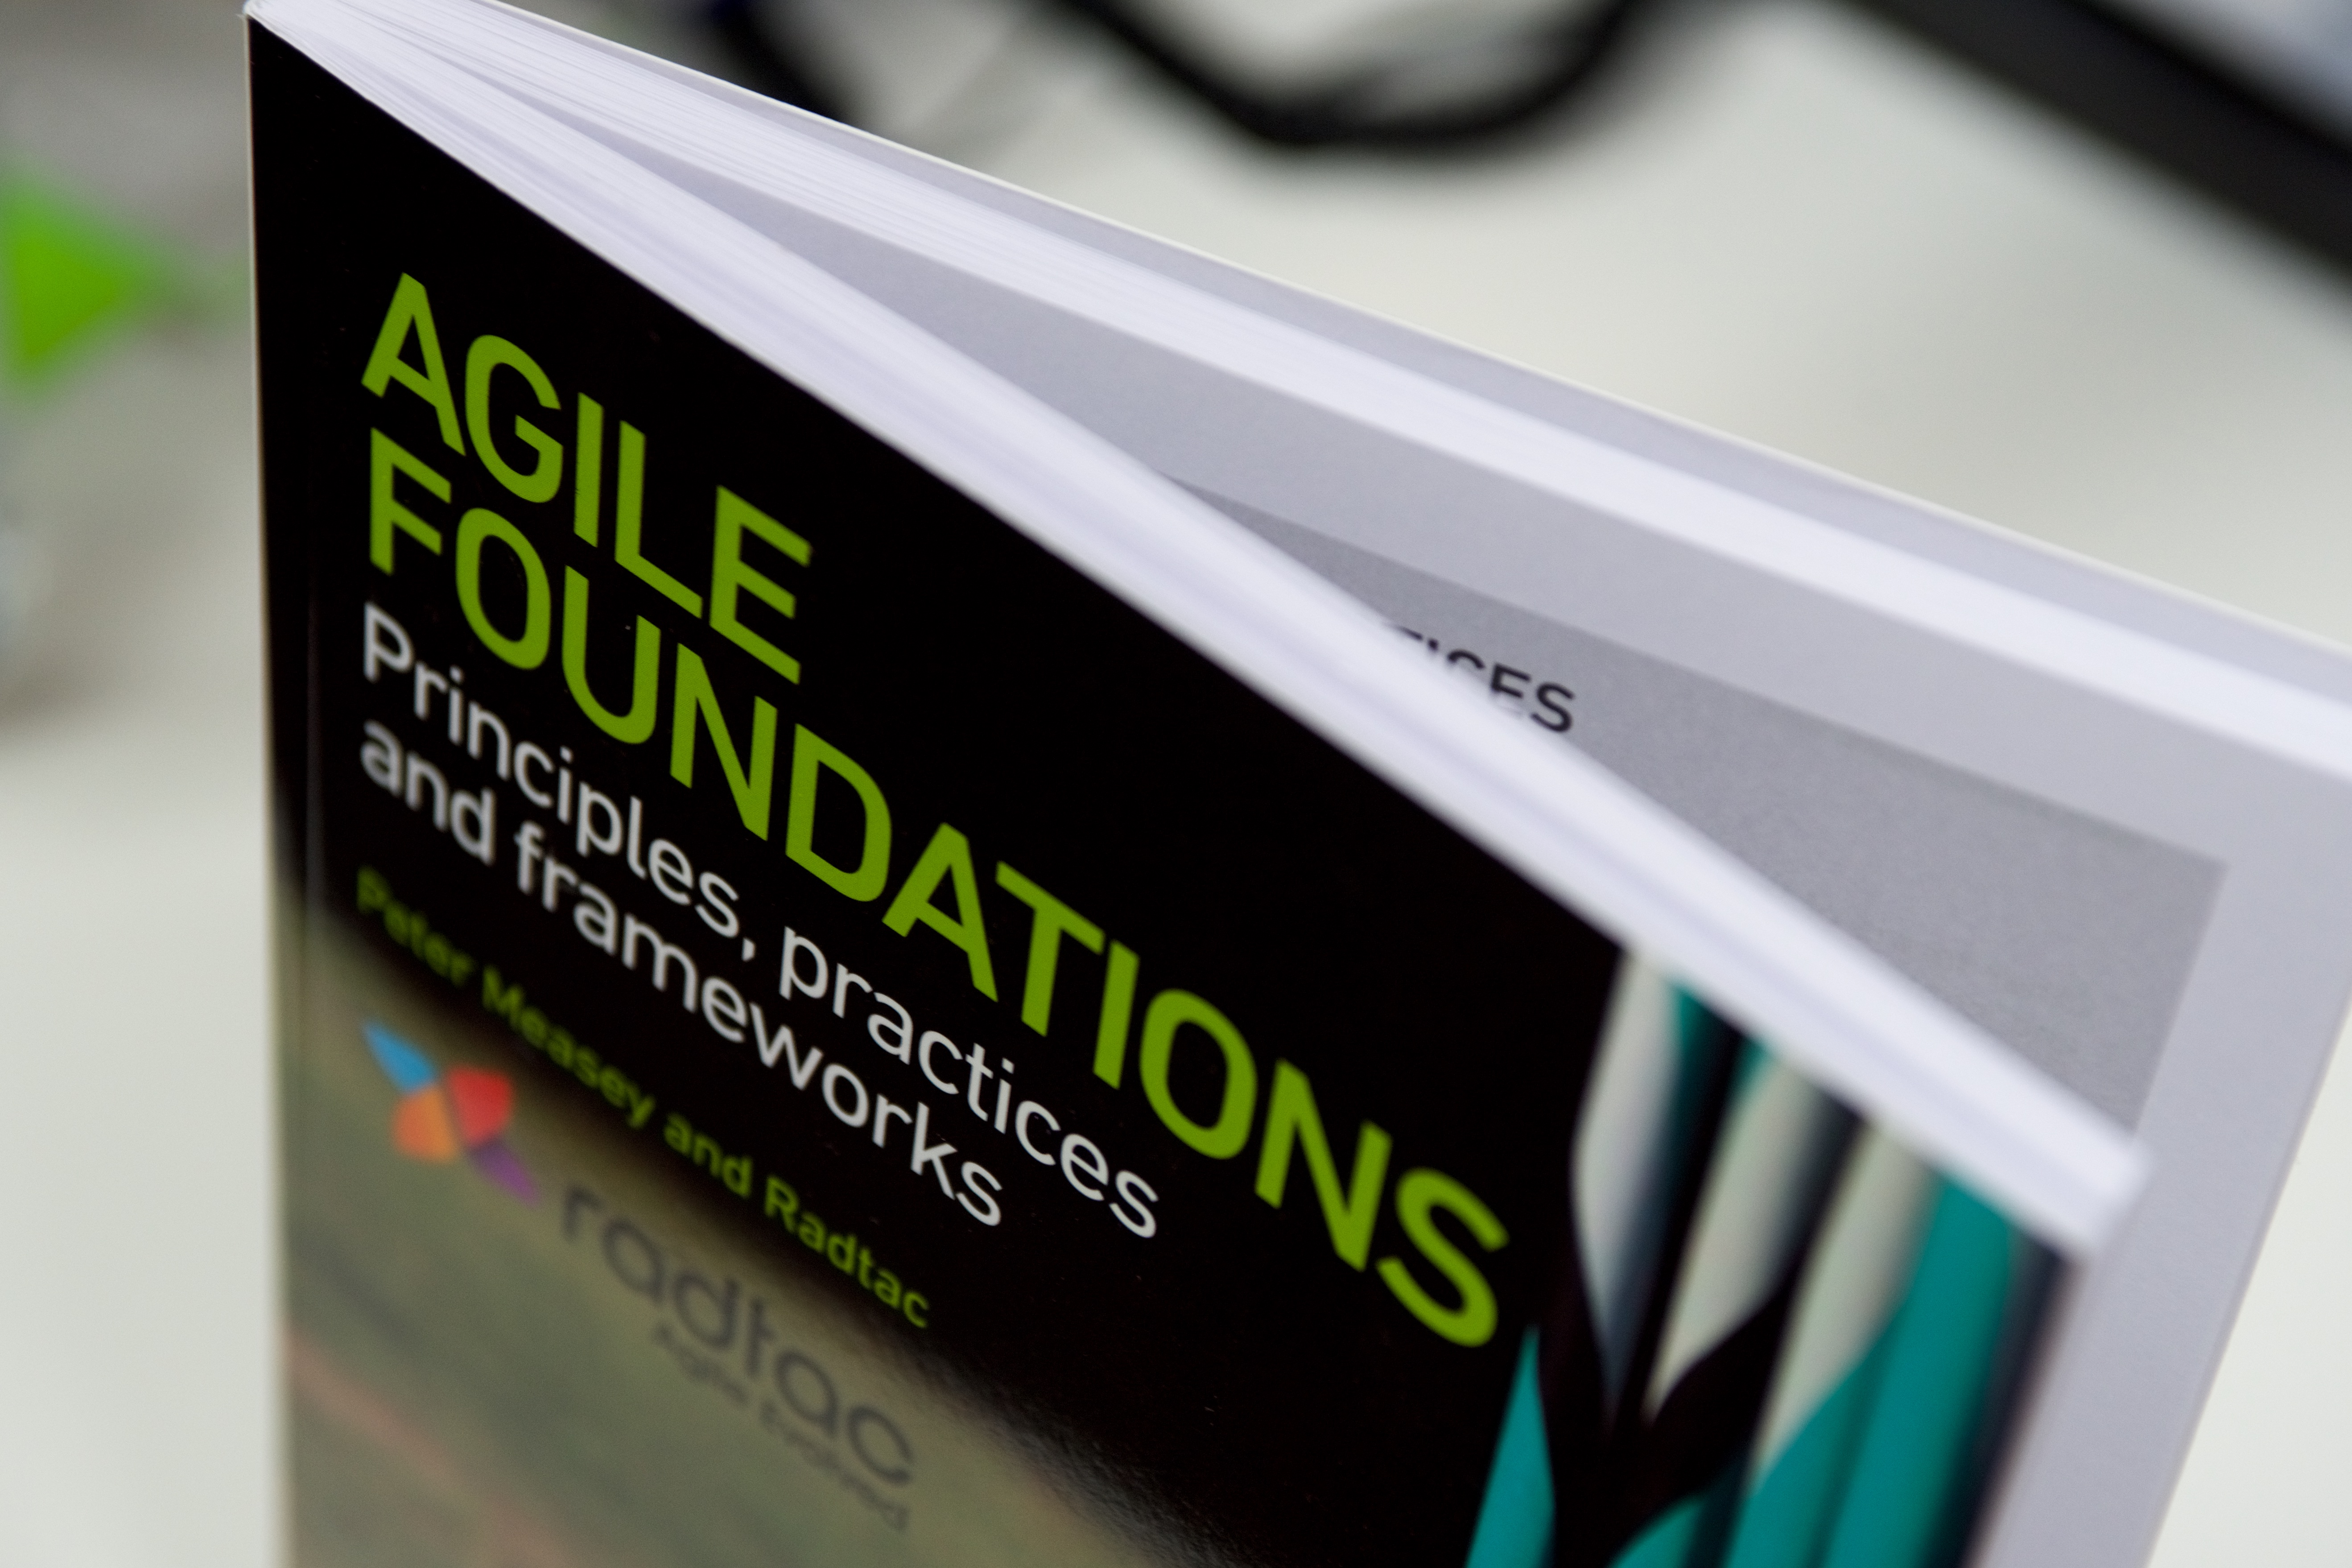 BCS_Agile_Foundations_-_Principles_practices_and_Frameworks.jpg